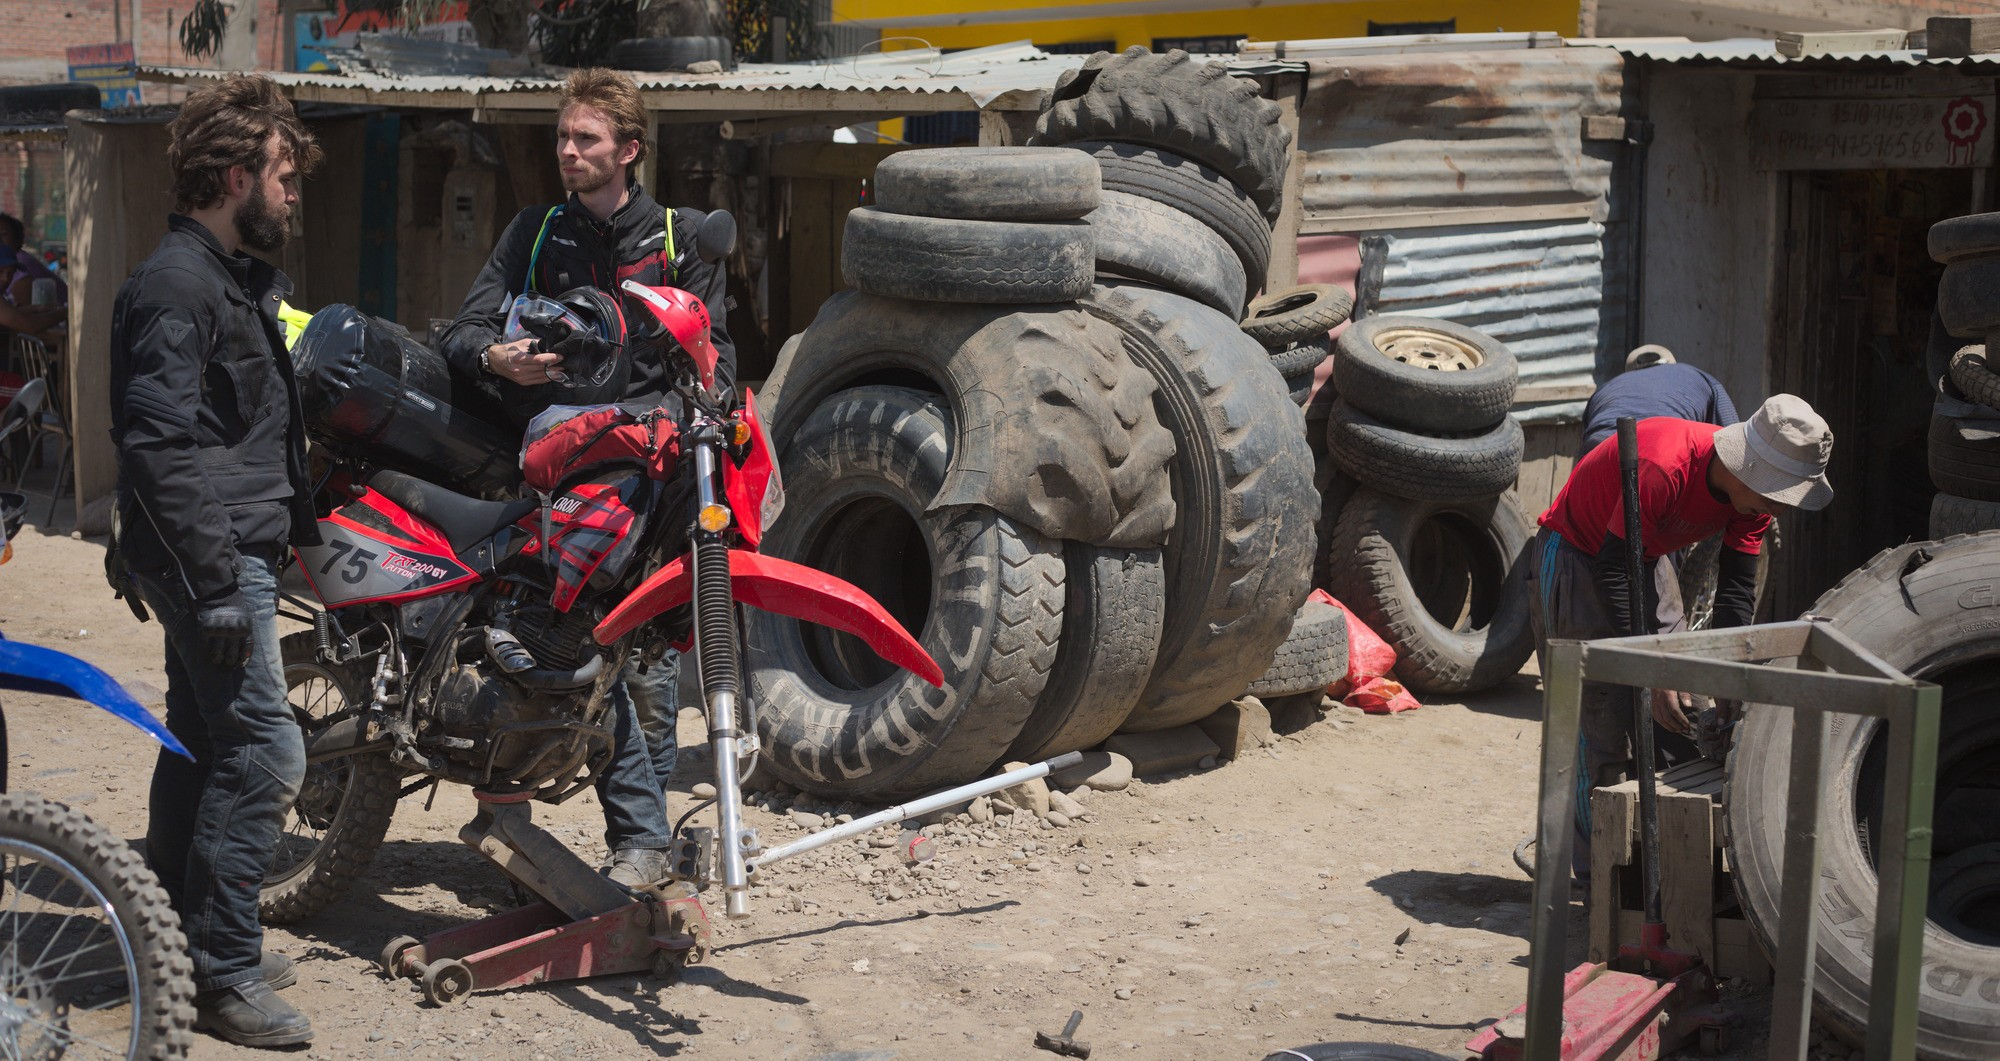 three friends quit their jobs to ride south america on dirt bikes these three fine specimens of unequalled chinese engineering were supplied by toby an american engineer we had found through some rather convoluted